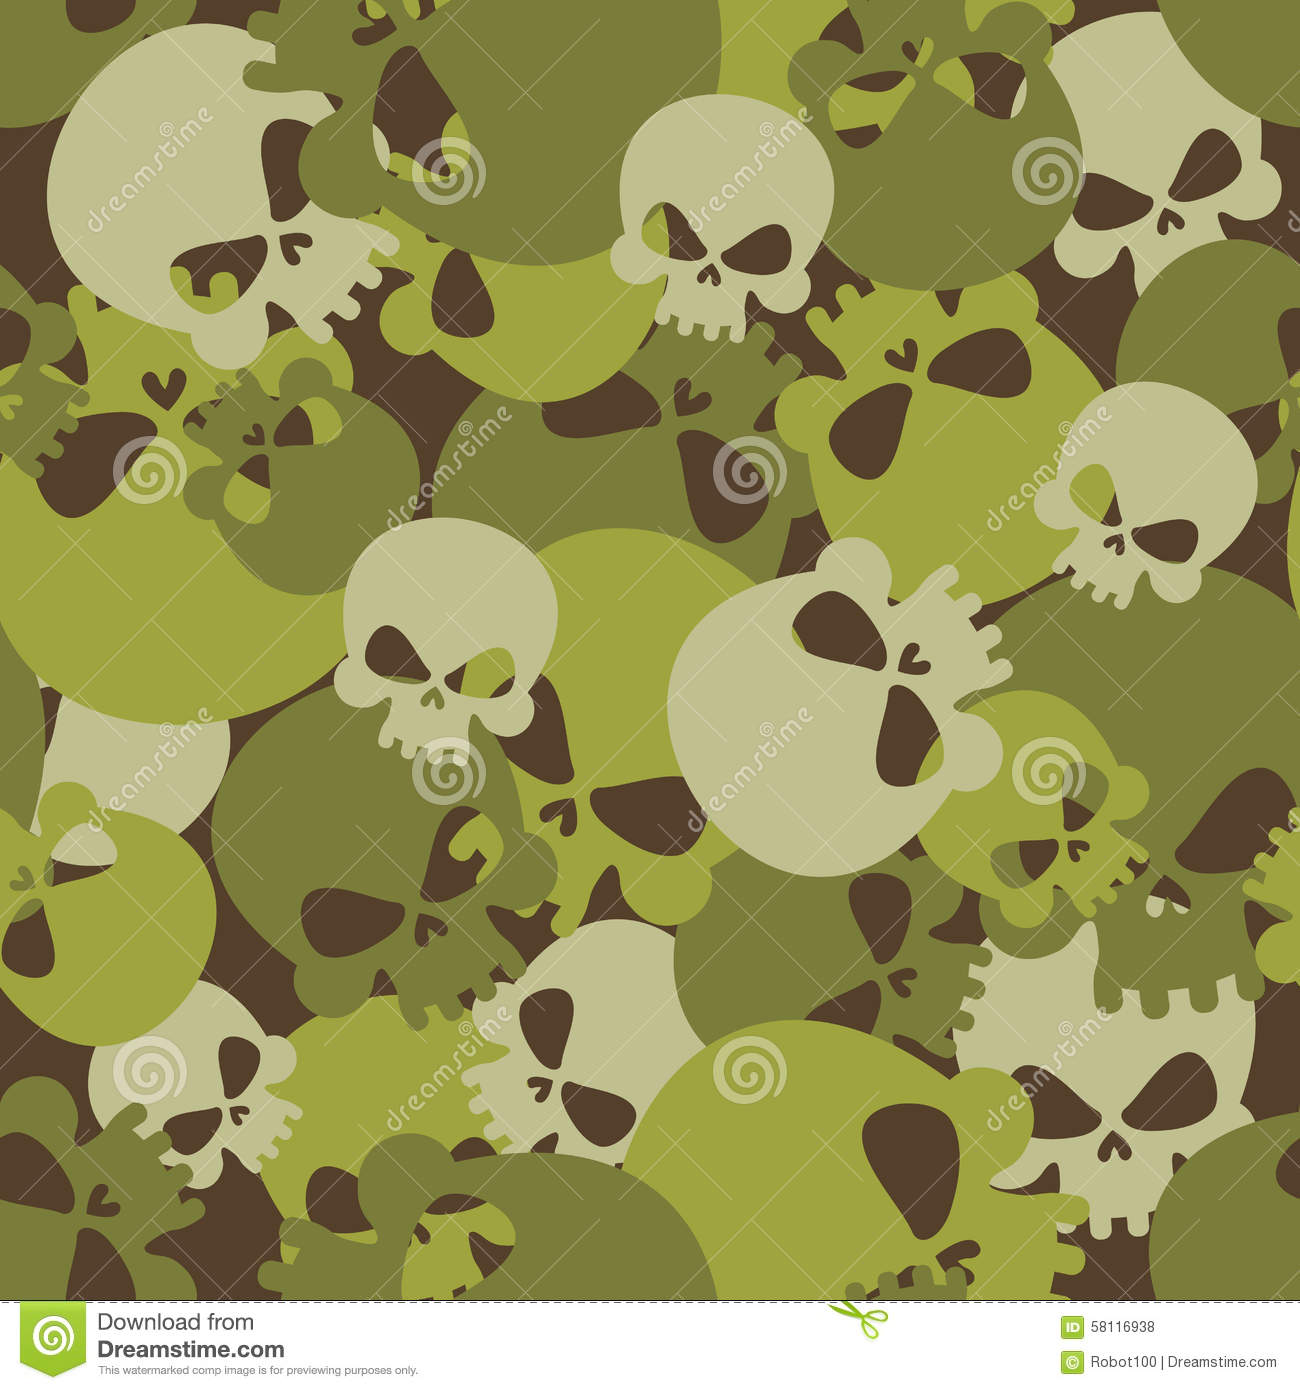 Skeleton Head Wallpaper 3d Military Texture Of Skulls Camouflage Army Seamless